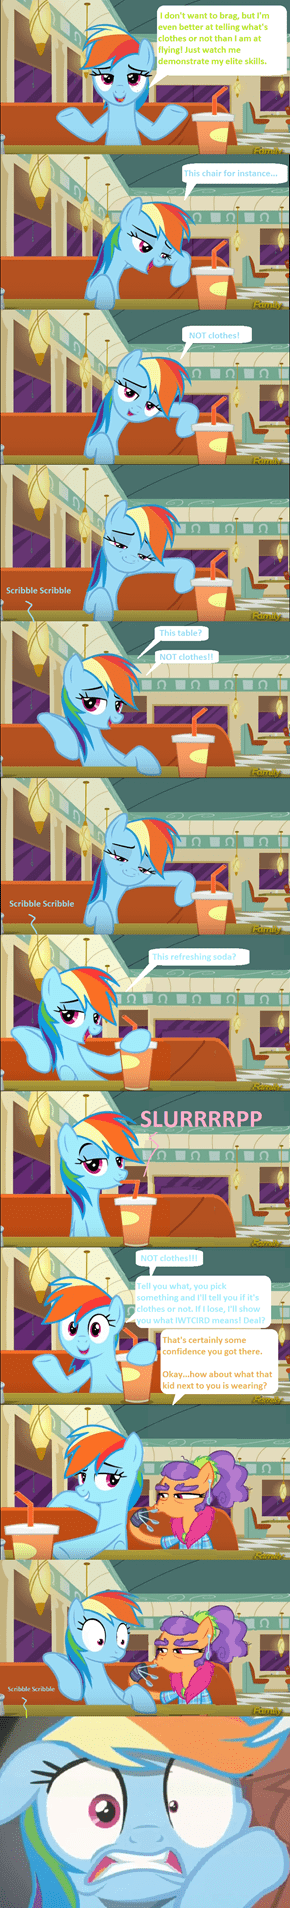 Rainbow Dash gets spooned